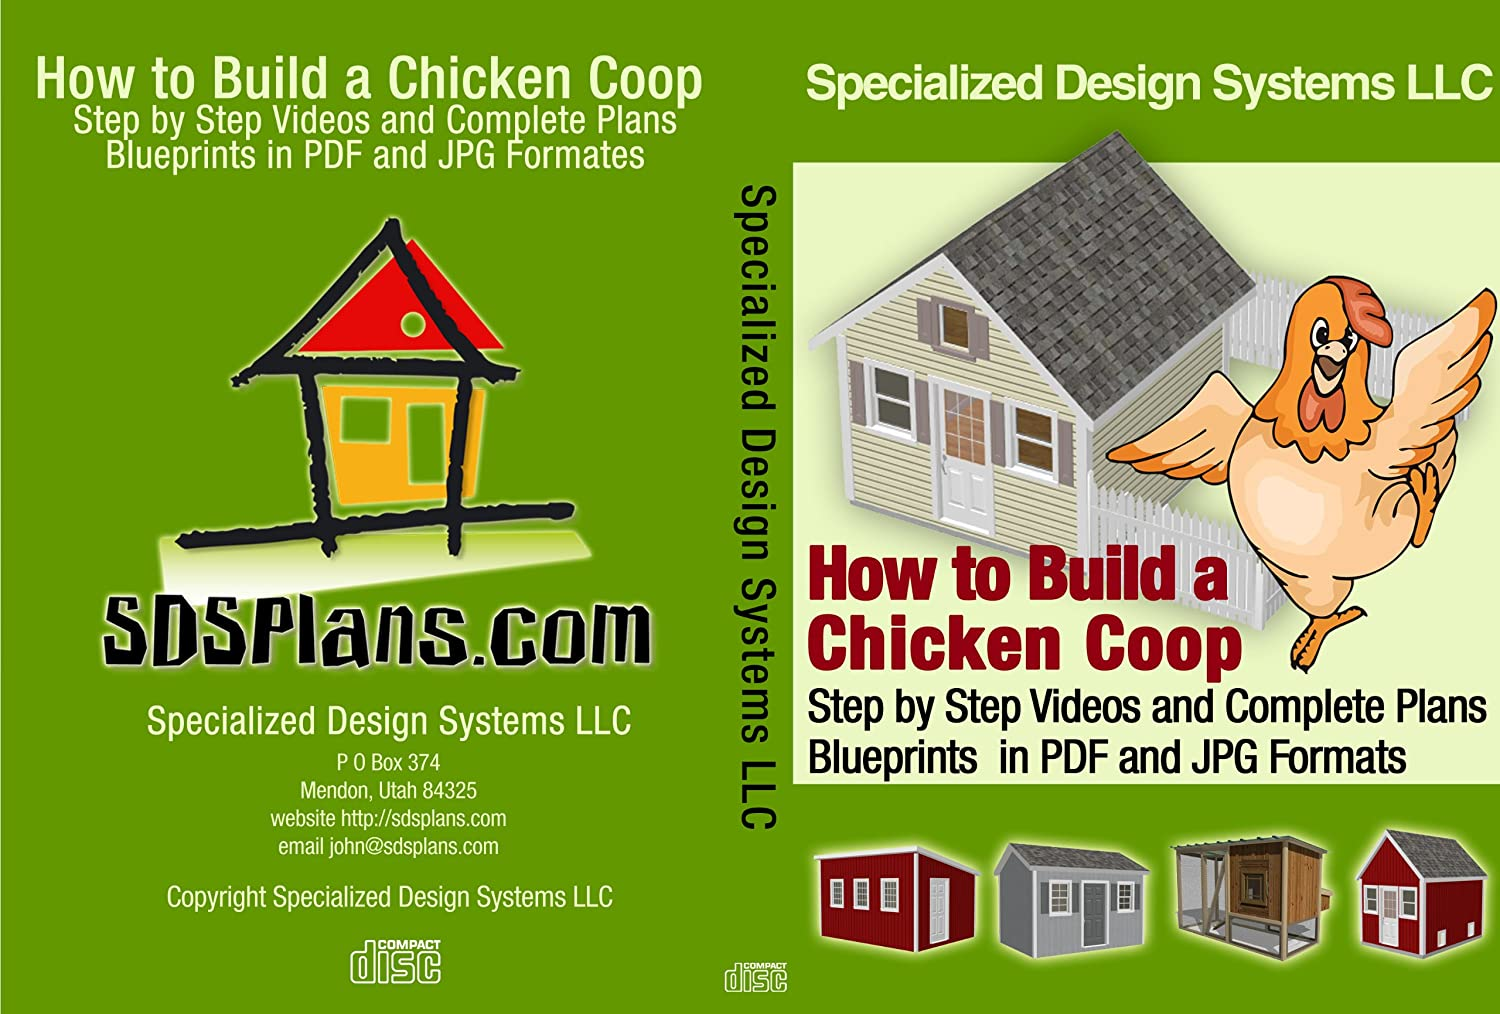 How to build a chicken coop cd with plans and blueprints how to build a chicken coop cd with plans and blueprints woodworking project plans amazon malvernweather Choice Image